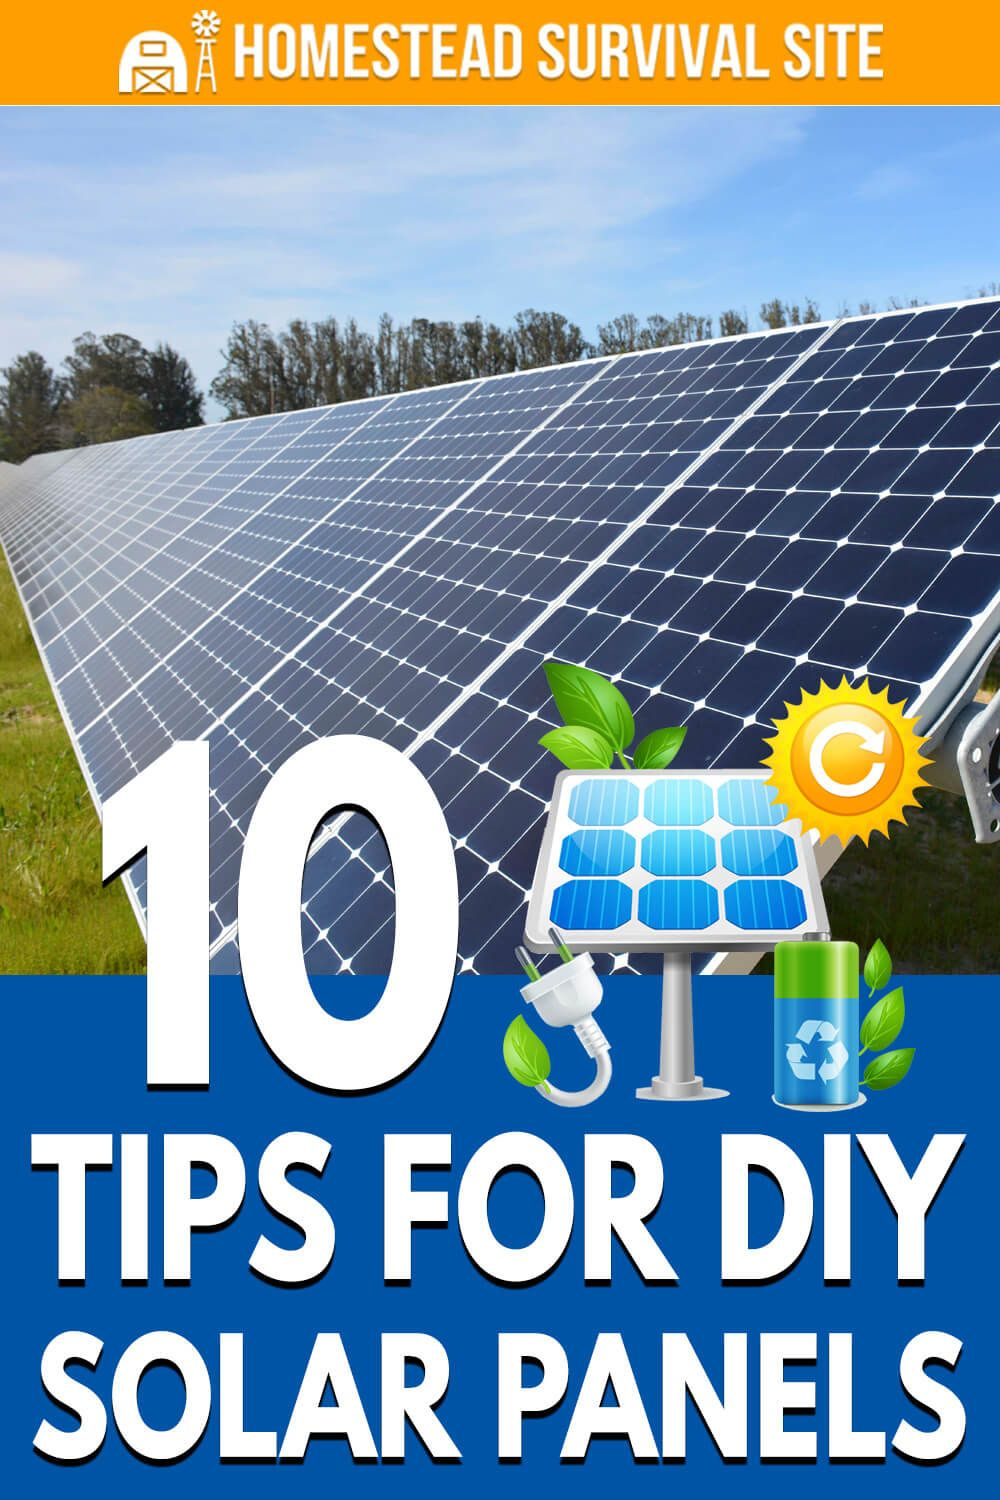 10 Tips For Diy Solar Panels Homestead Survival Site In 2020 Diy Solar Diy Solar Panel Solar